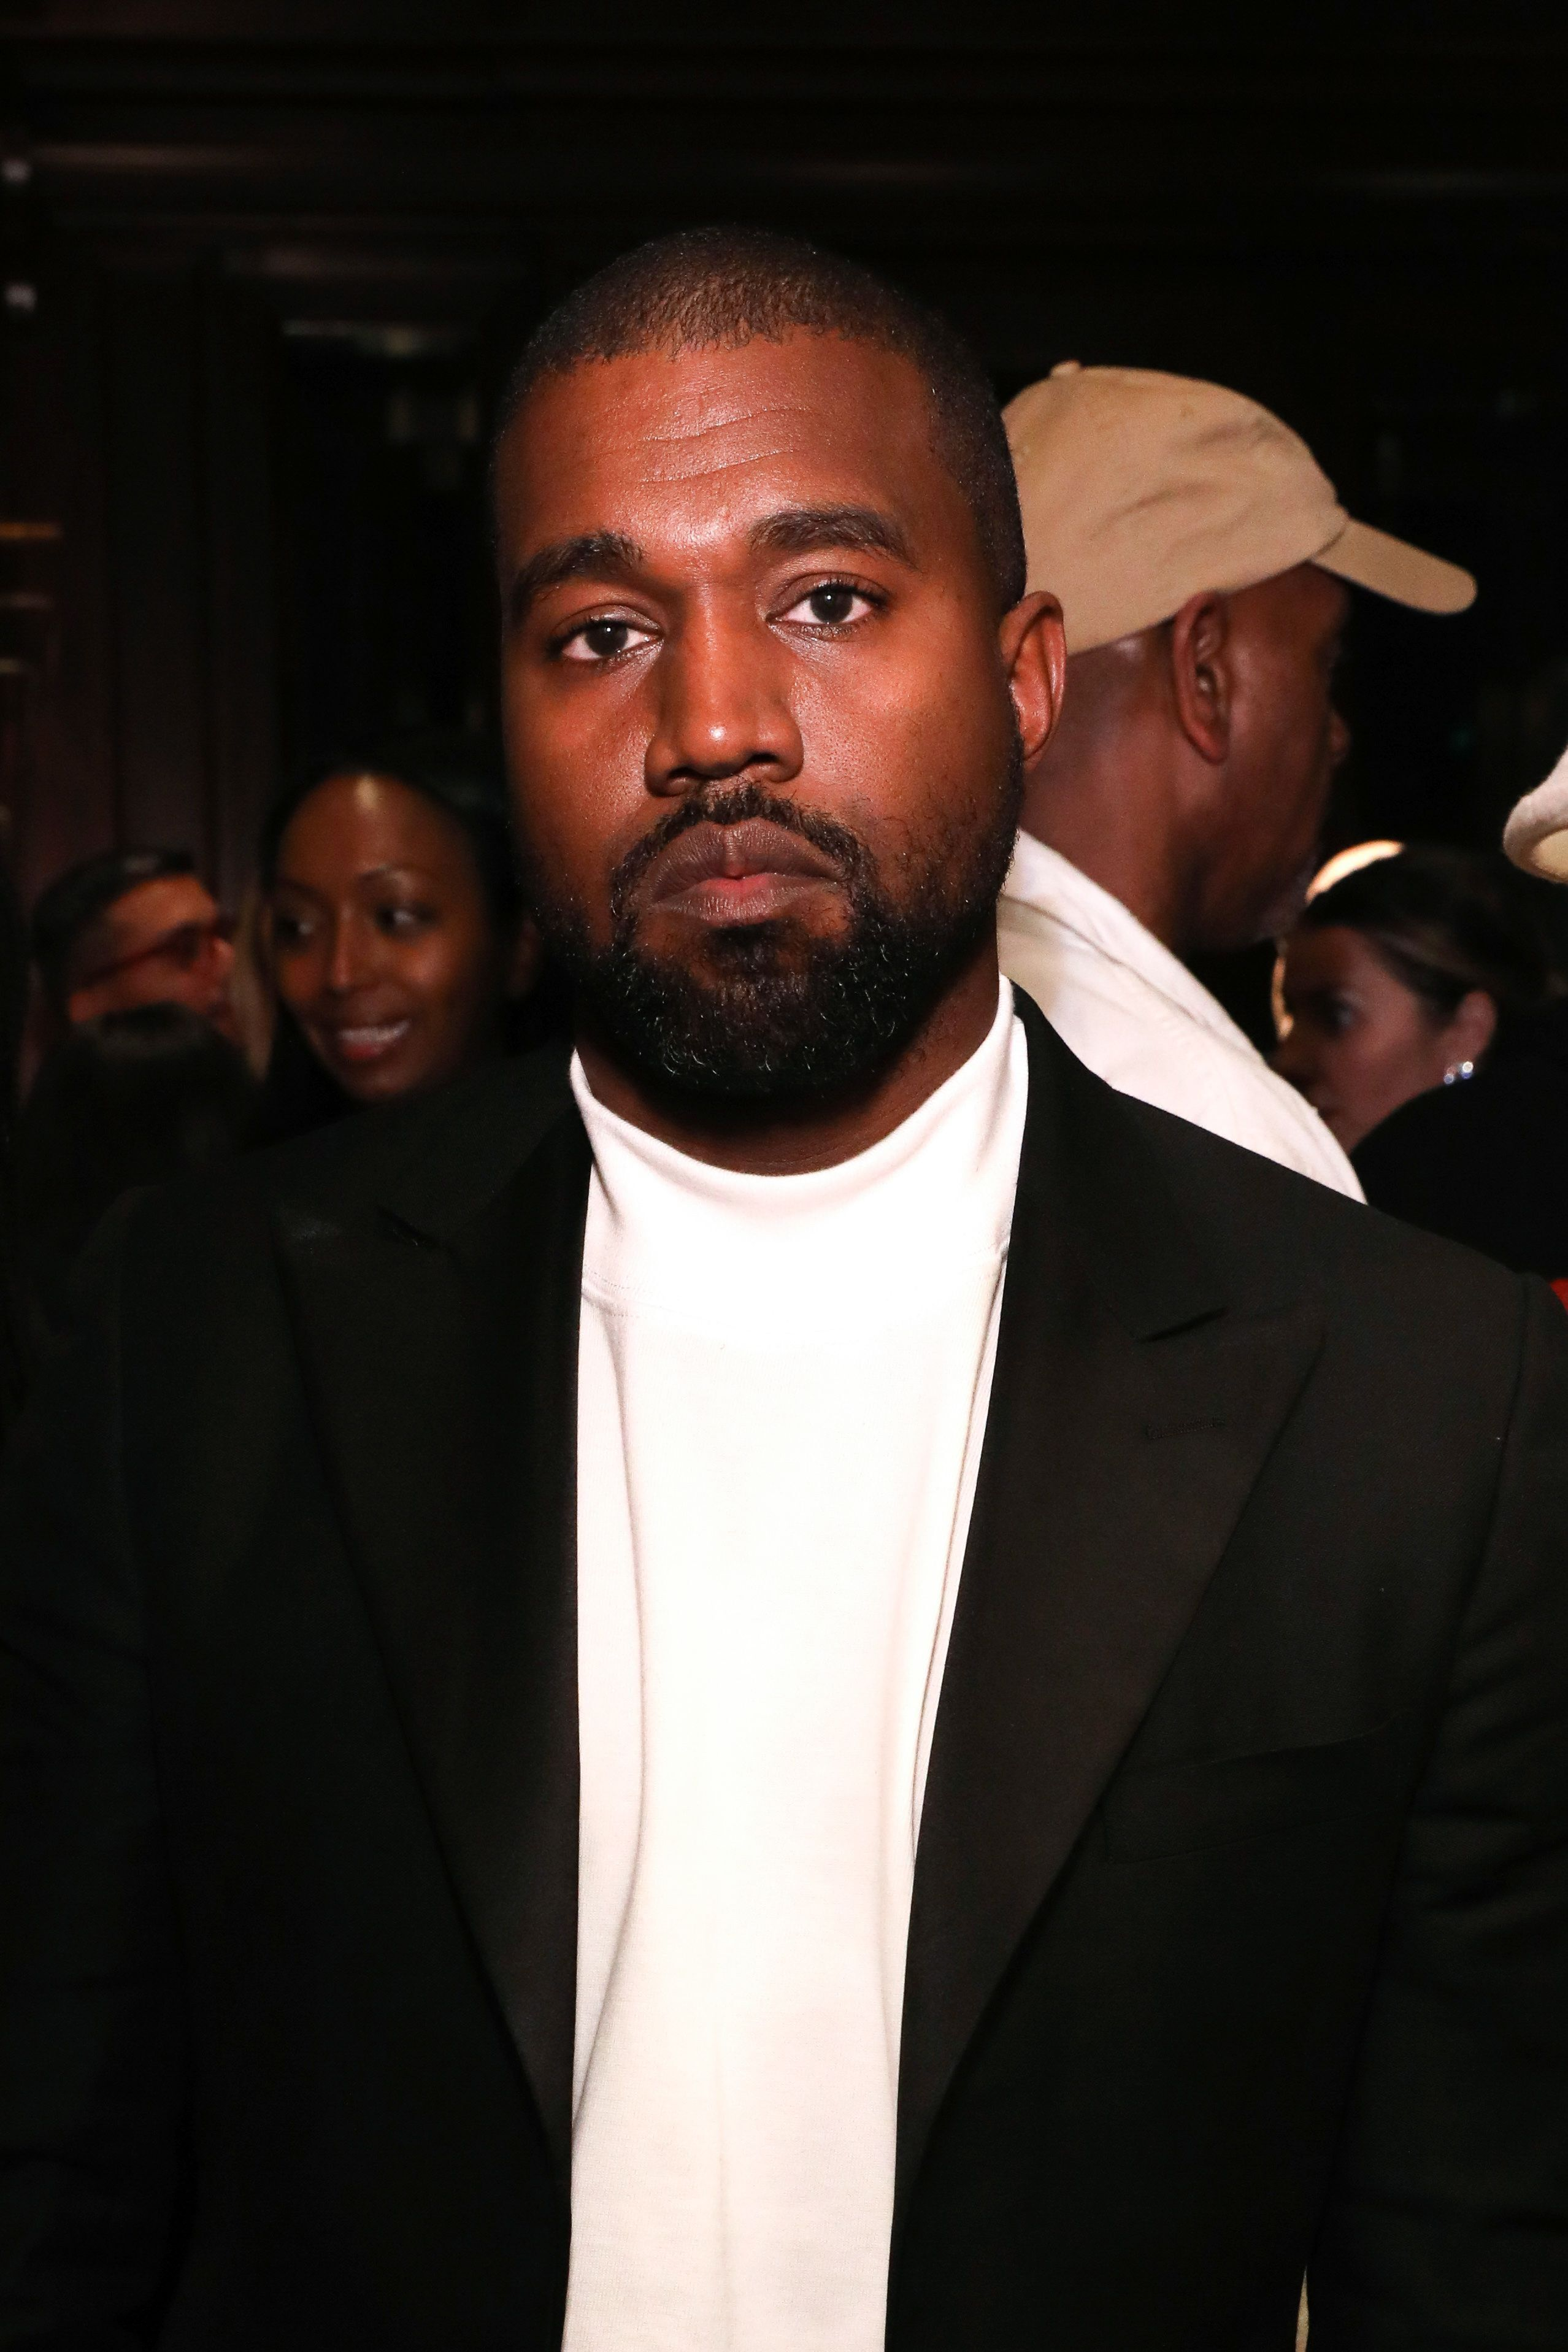 Kanye West Received Multimillion Dollar Small Business Loan Announces 2020 Run For Presidency Fox Business In 2020 Kanye West Albums Christian Gospel Kanye West